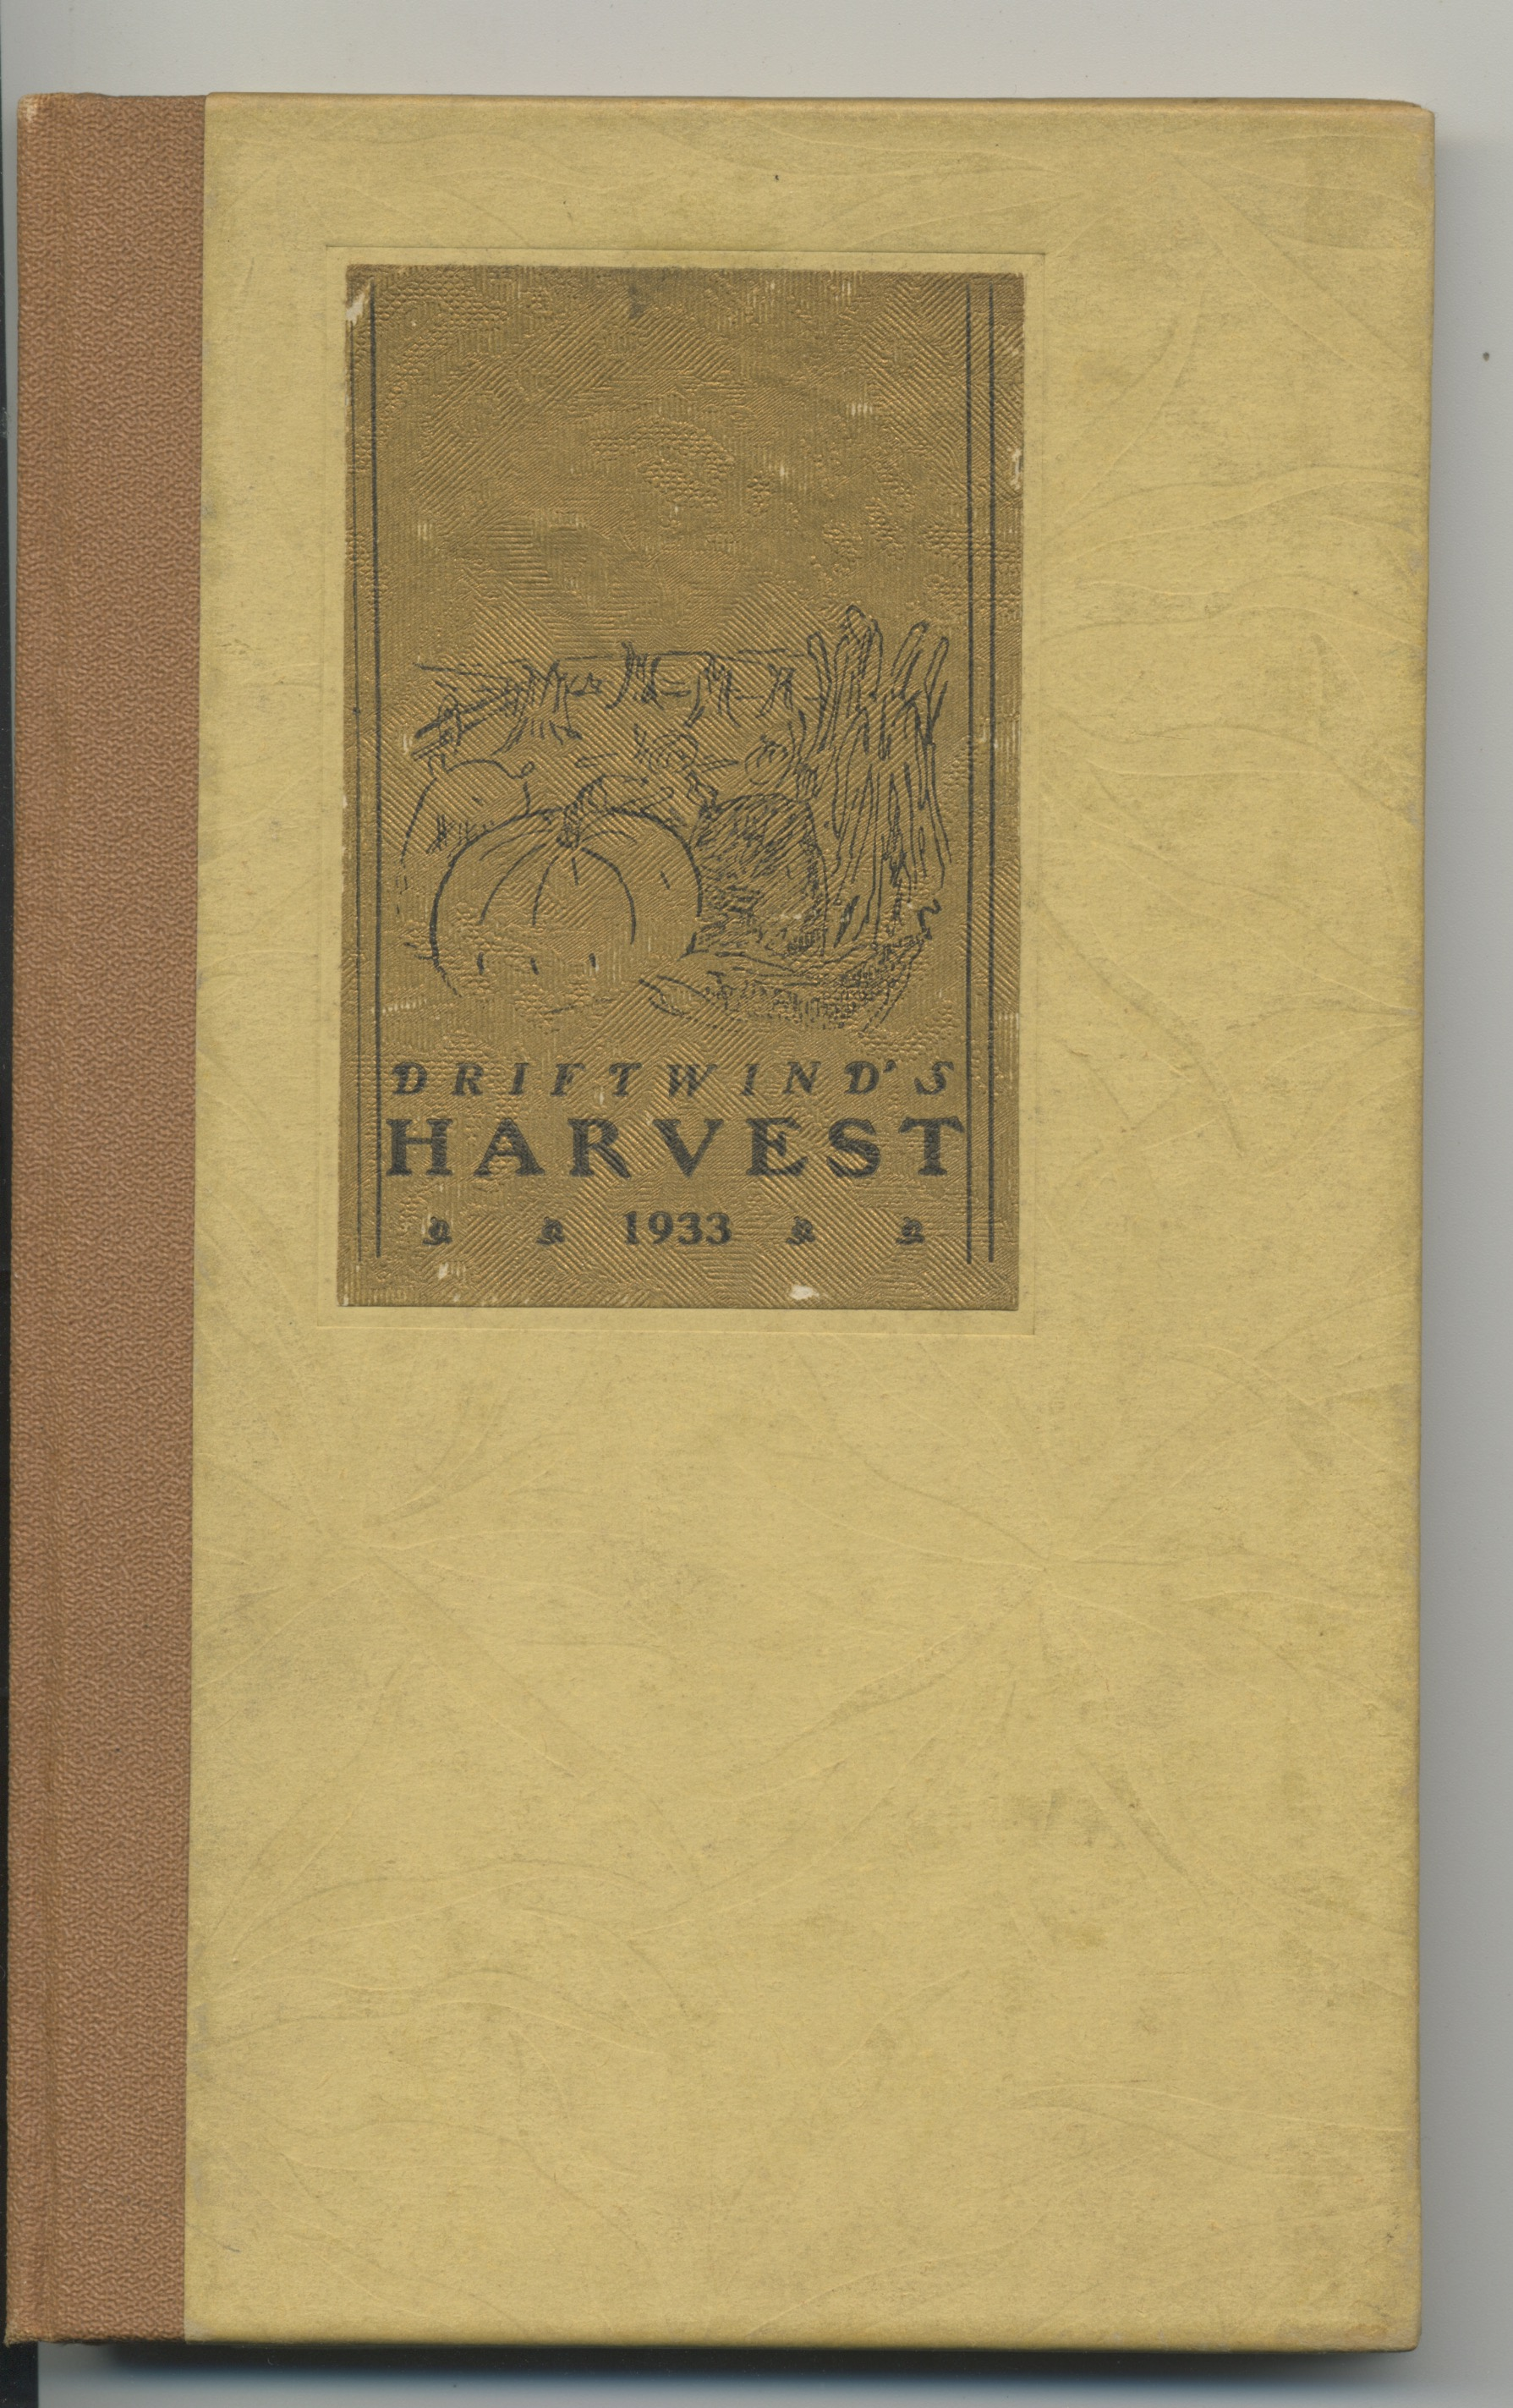 Image for (The Canal) HARVEST: A Sheaf of Poems from Driftwind.  1933 hardbound appearance of HPL's poem, THE CANAL from his FUNGI FROM YUGGOTH.